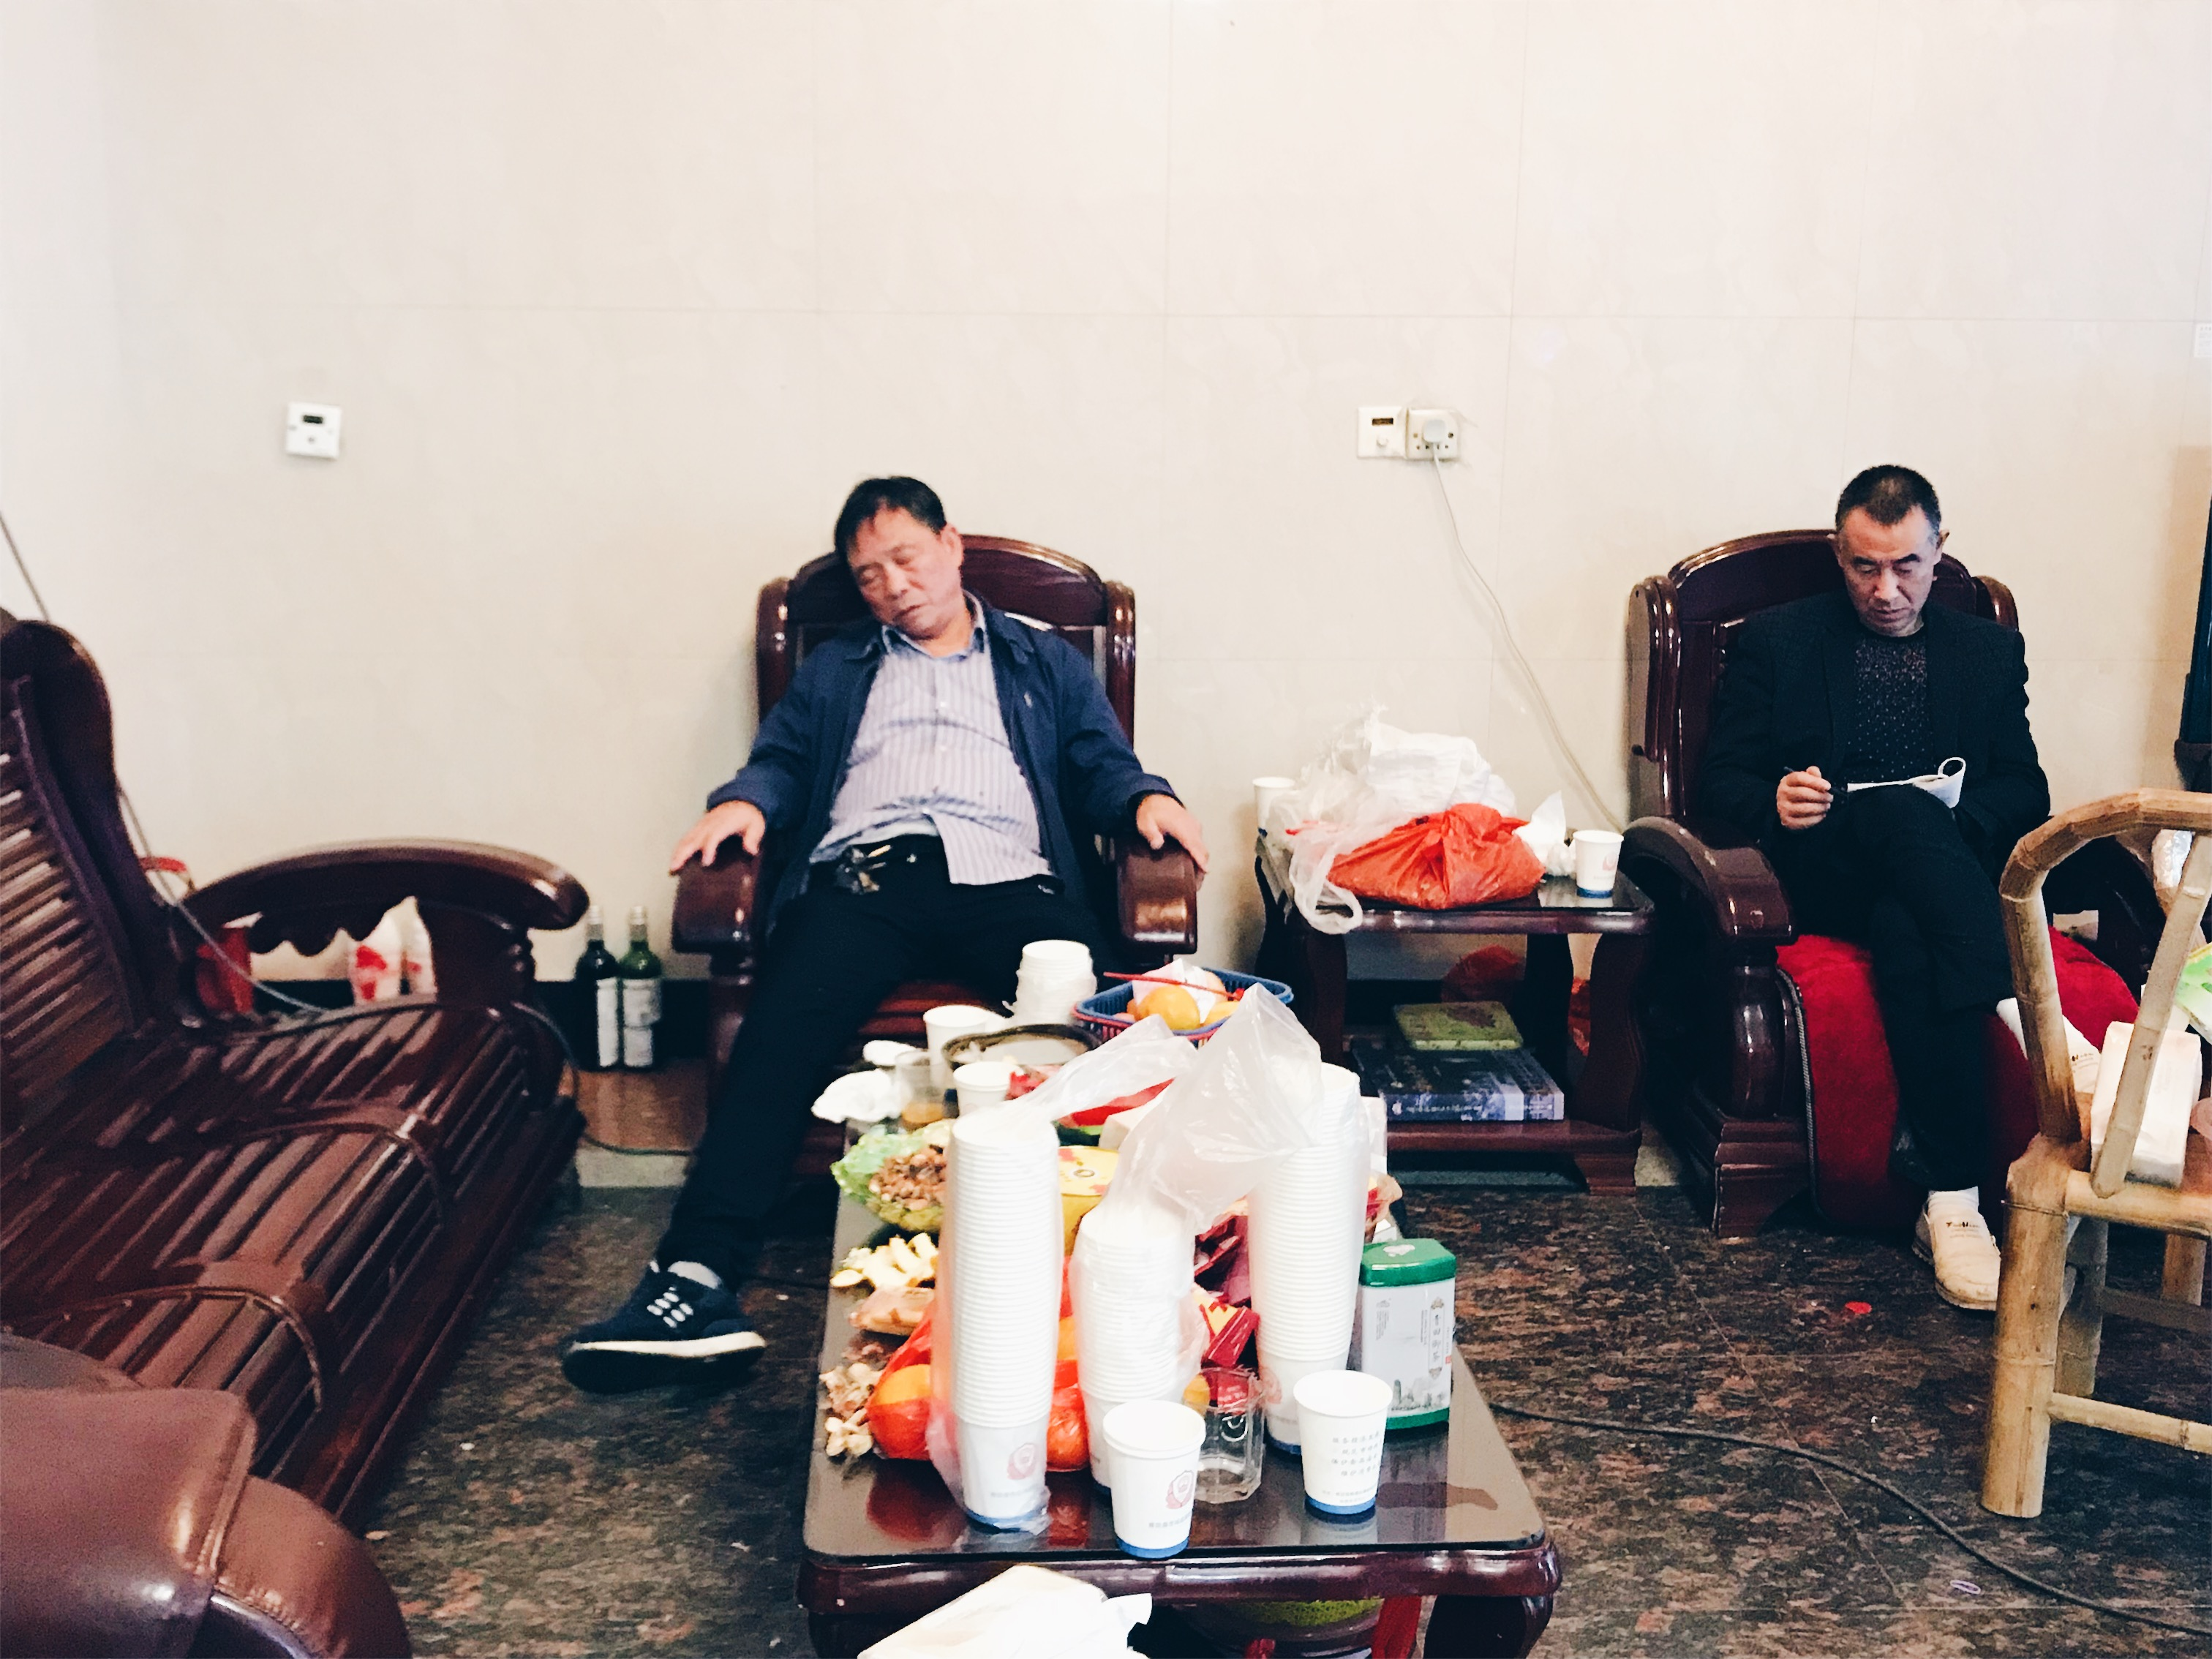 Chinese funeral - exhaustion